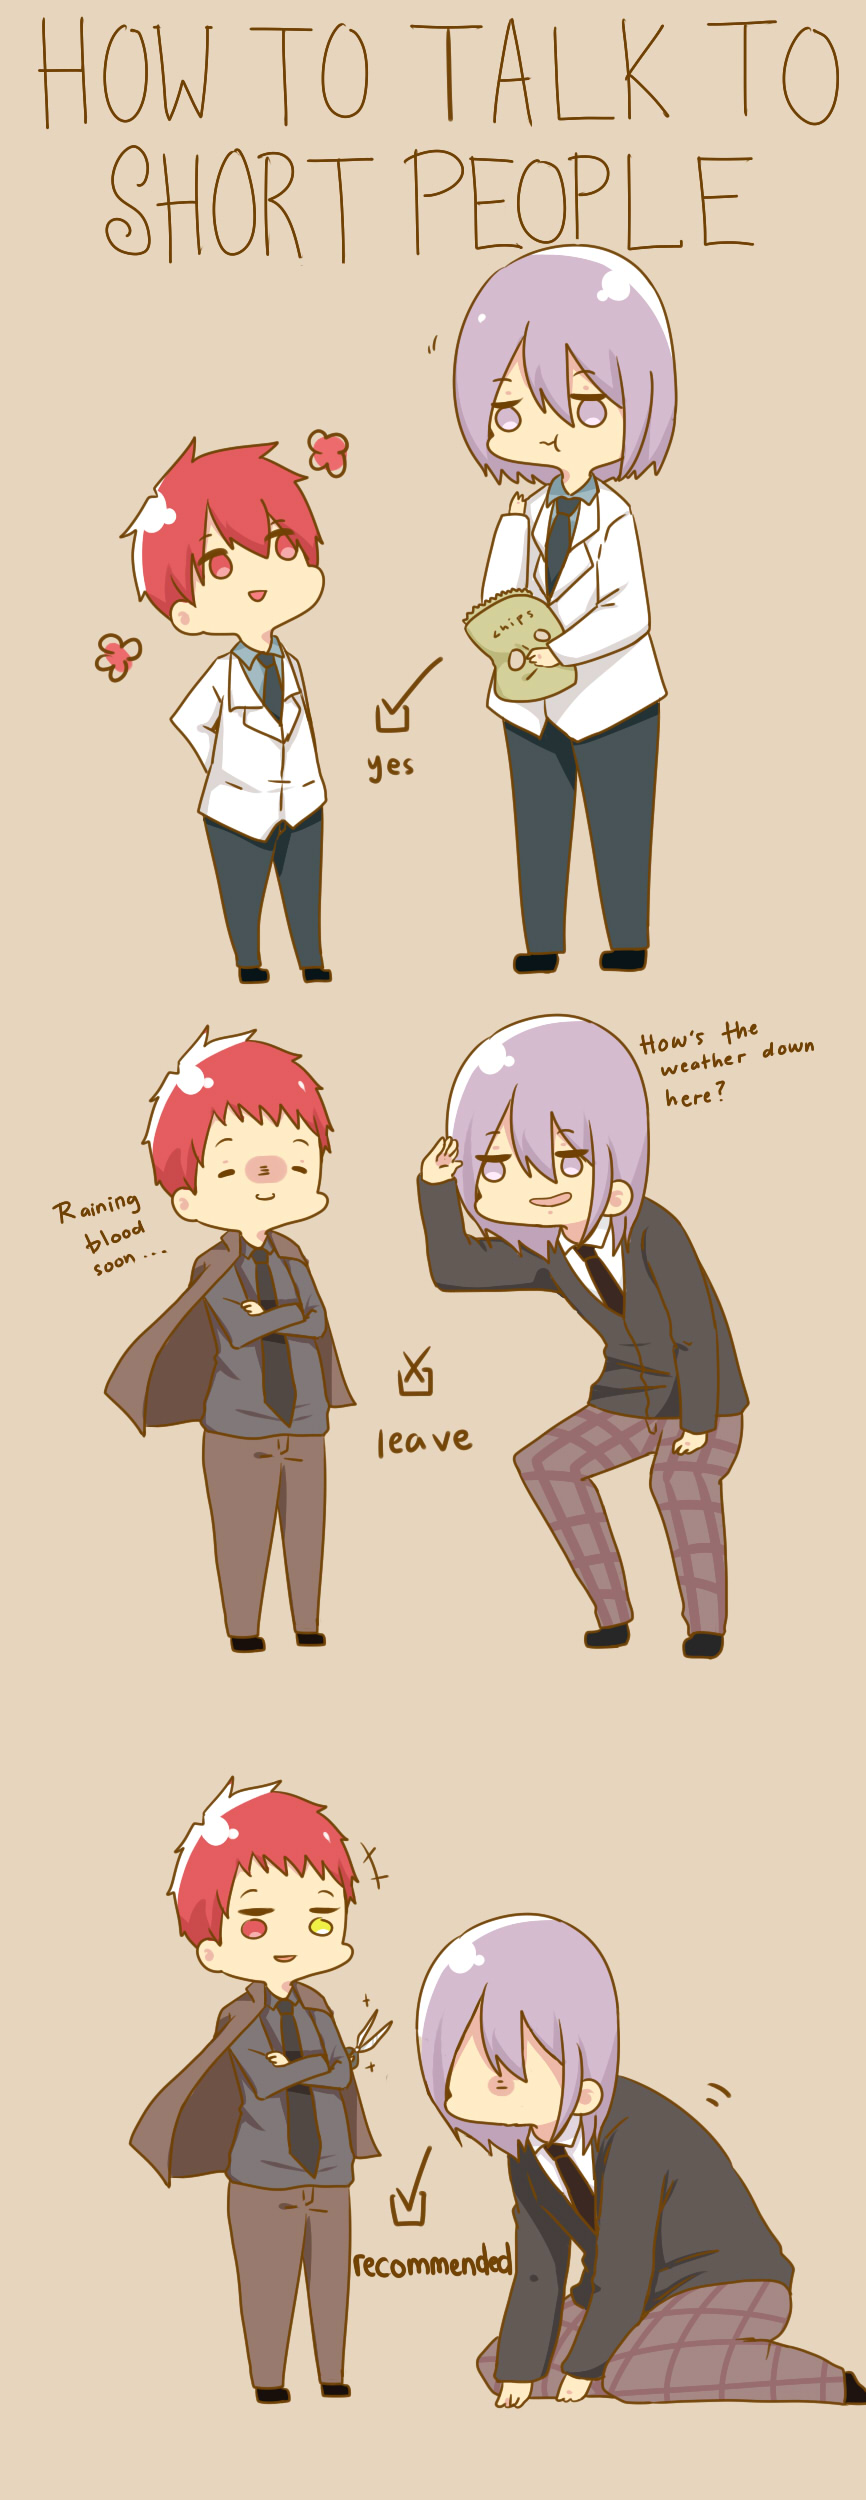 how to talk to short people -knb ver.- by s-haa on DeviantArt